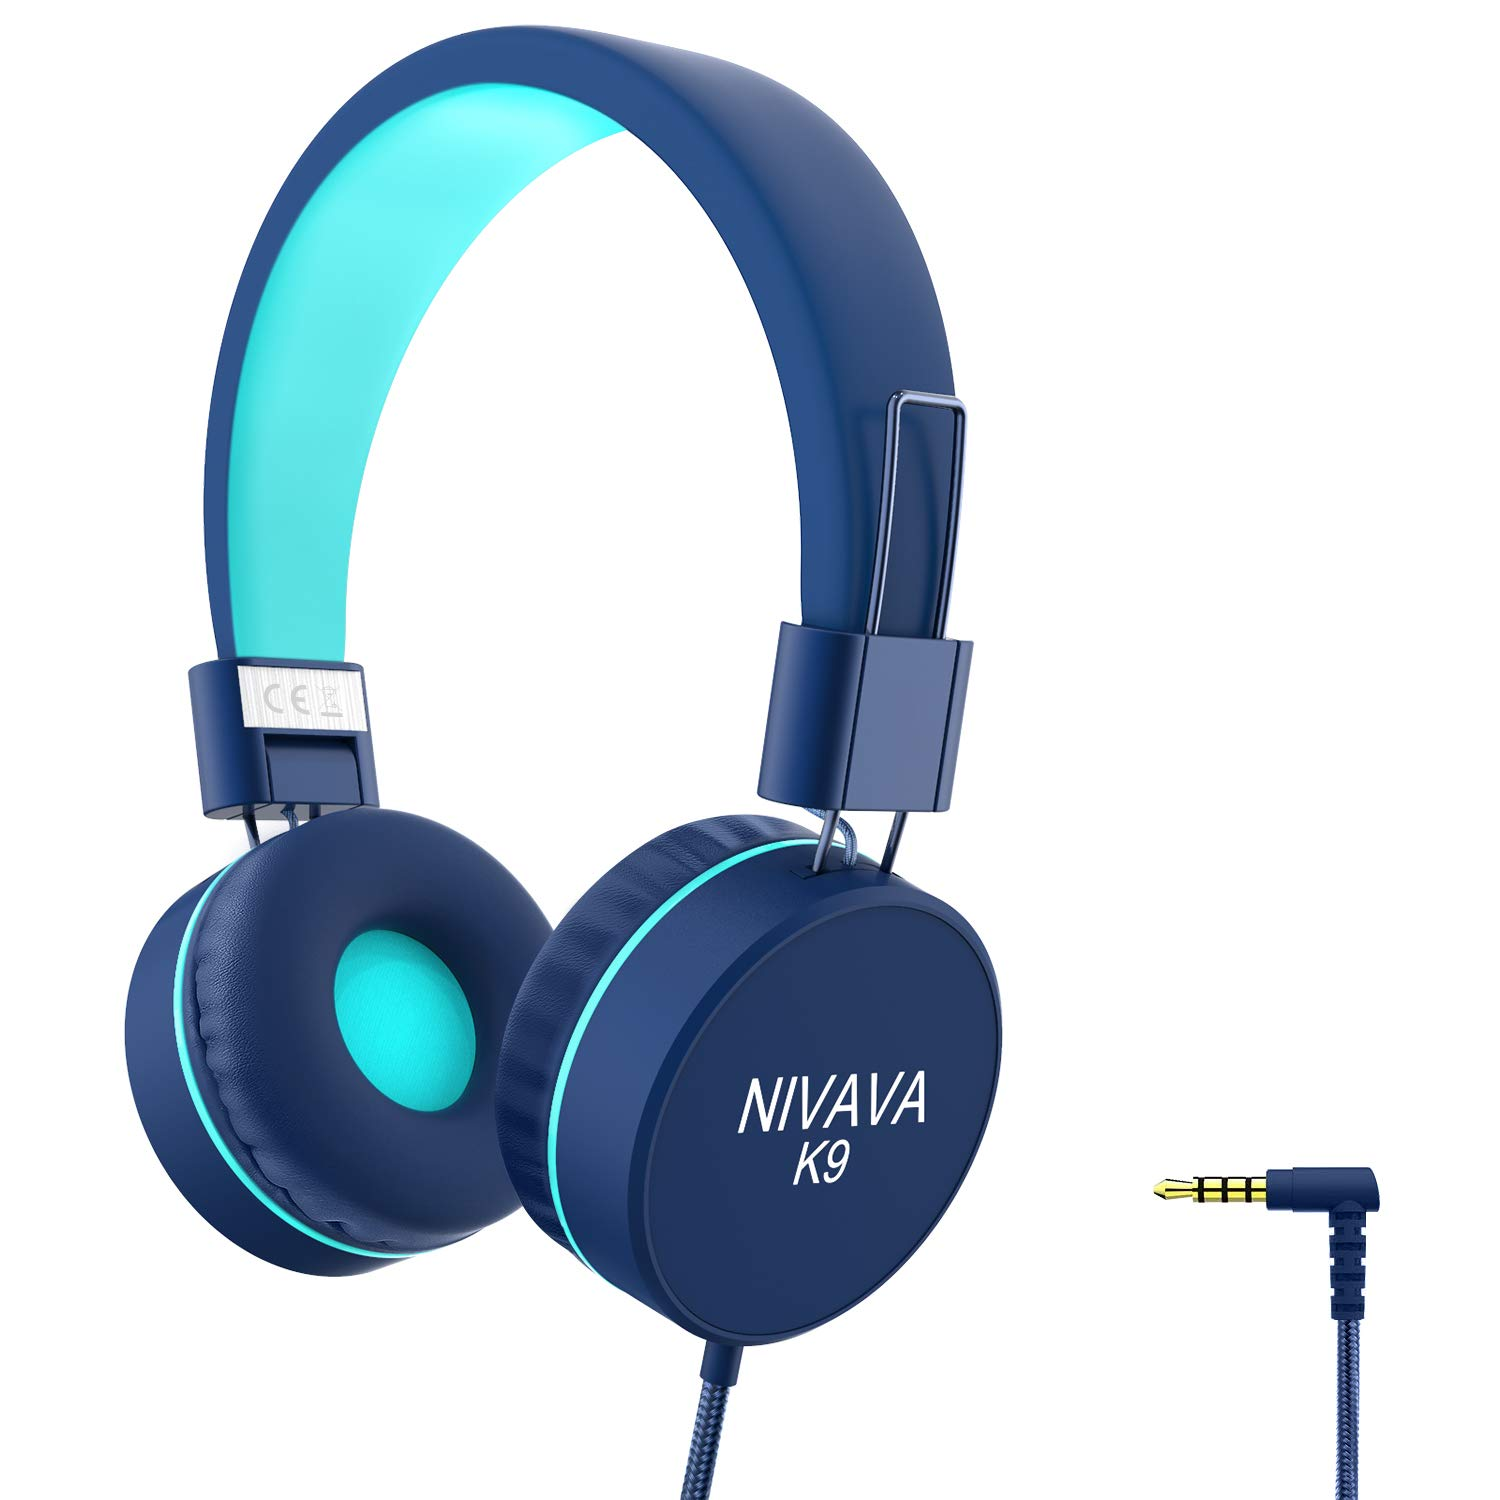 Nivava K9 Kids Headphones for Children Boys Girls Teens Wired 85dB Volume Limited Foldable Lightweight Stereo On Ear Headset for iPad Cellphones Computer MP3/4 Kindle Airplane School(Blue Mint Green)